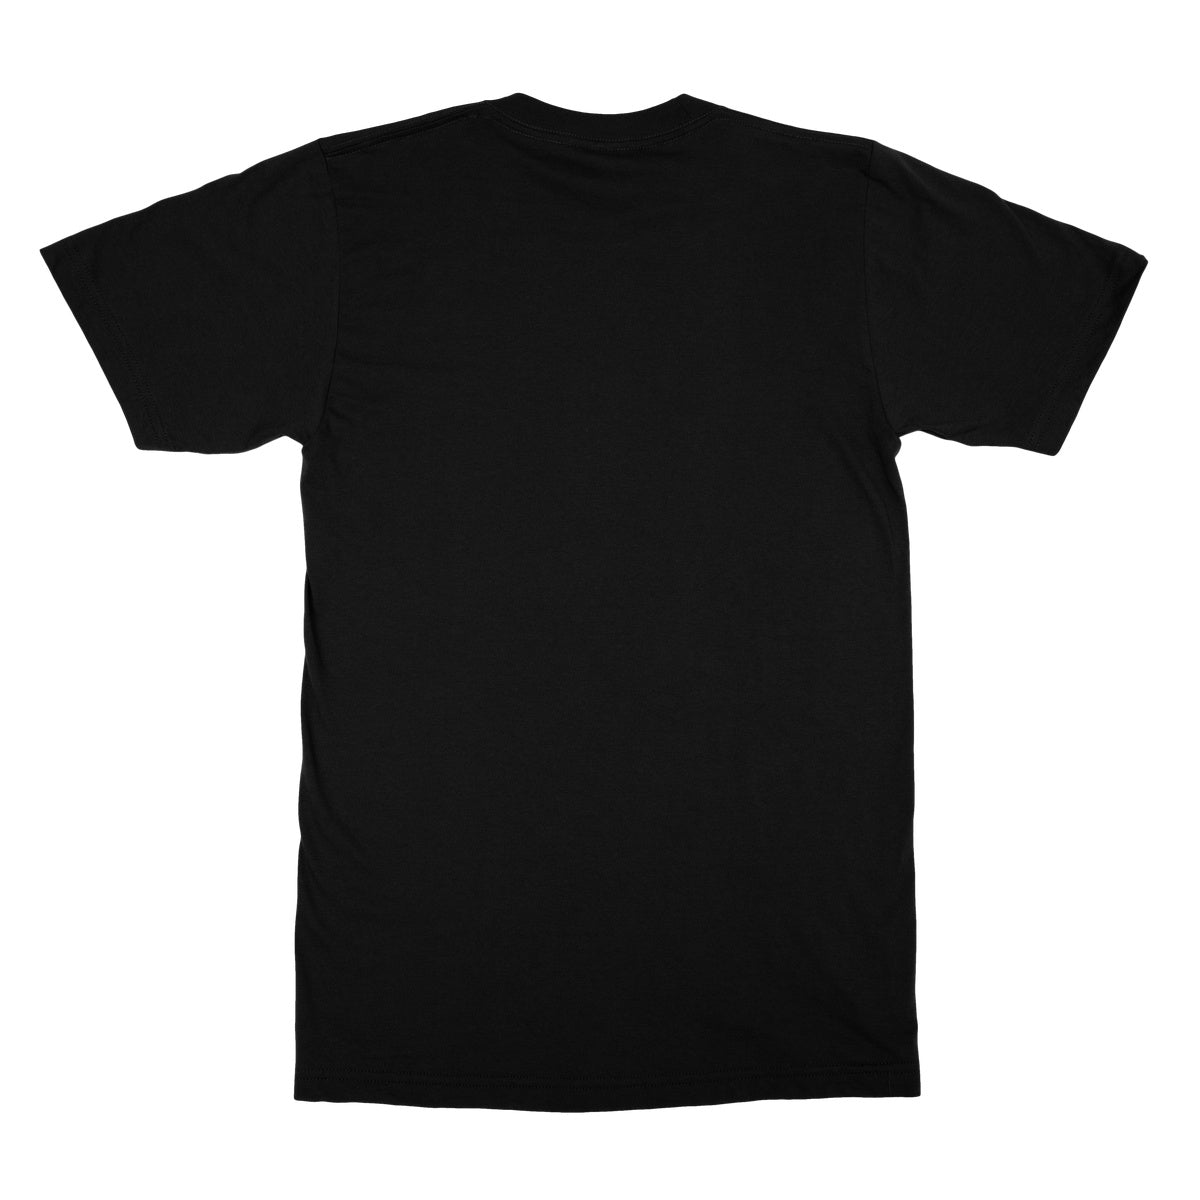 Texas Death Match CxE Softstyle T-Shirt